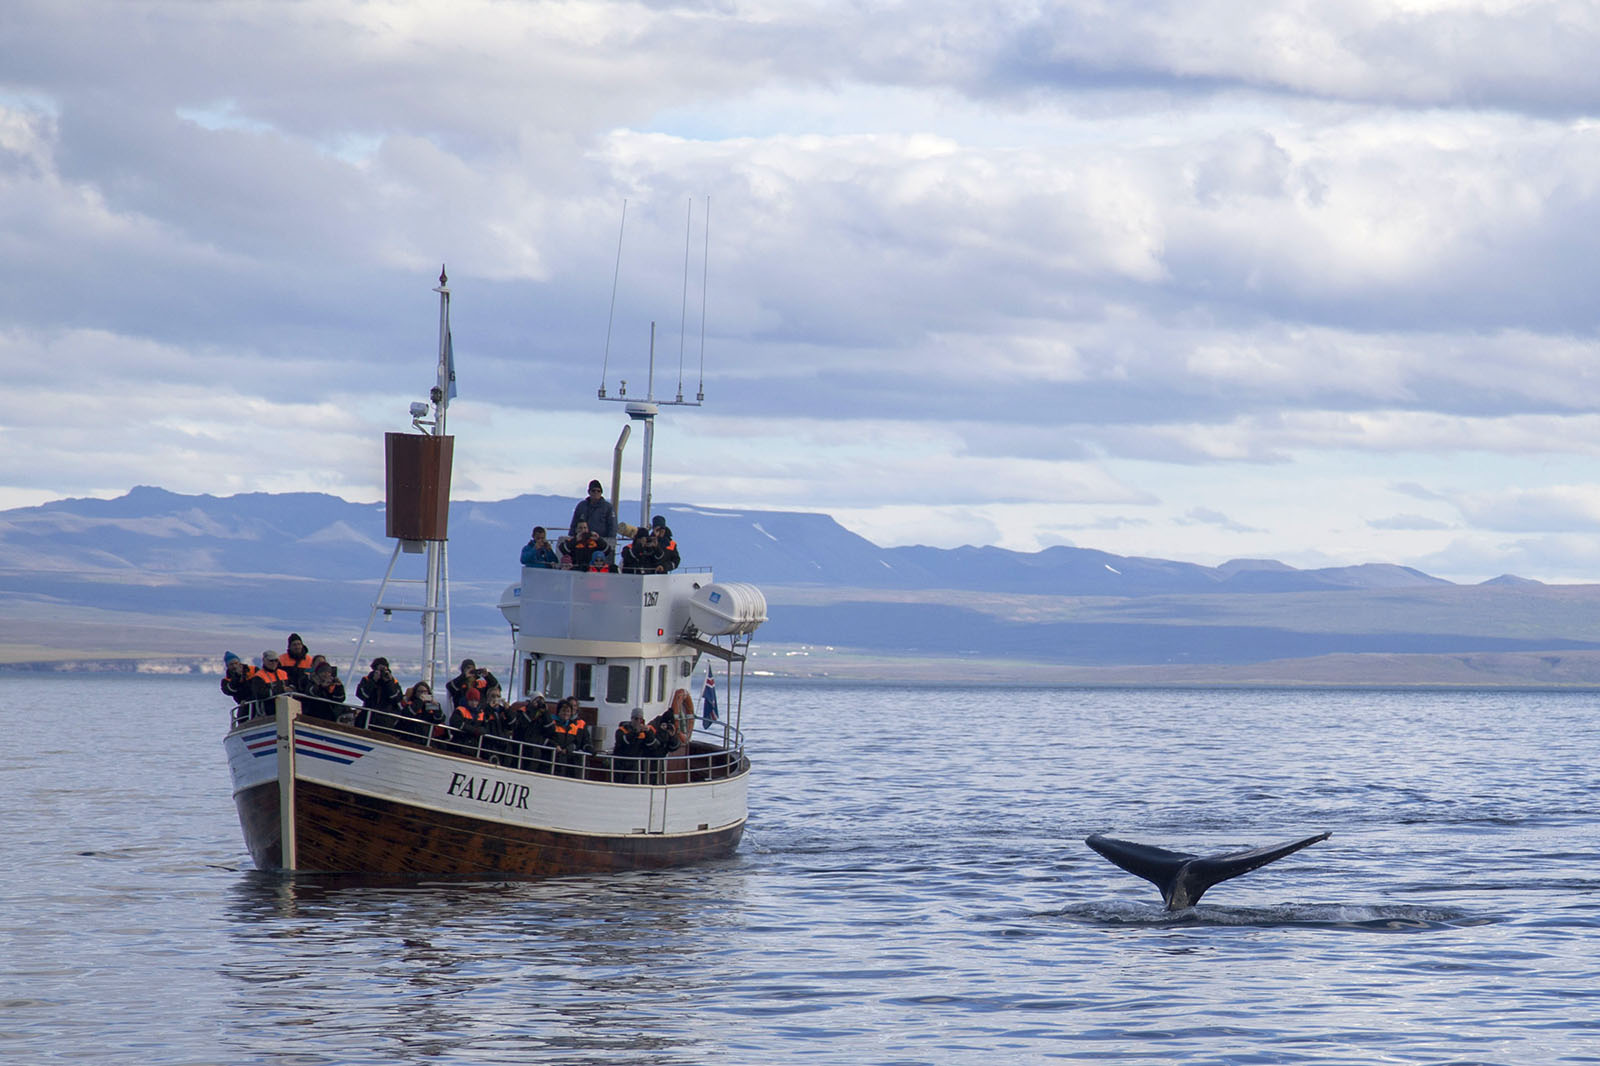 Tourists take in the view of humpback whales during a whale watching tour that embarked from Húsavík, Iceland.